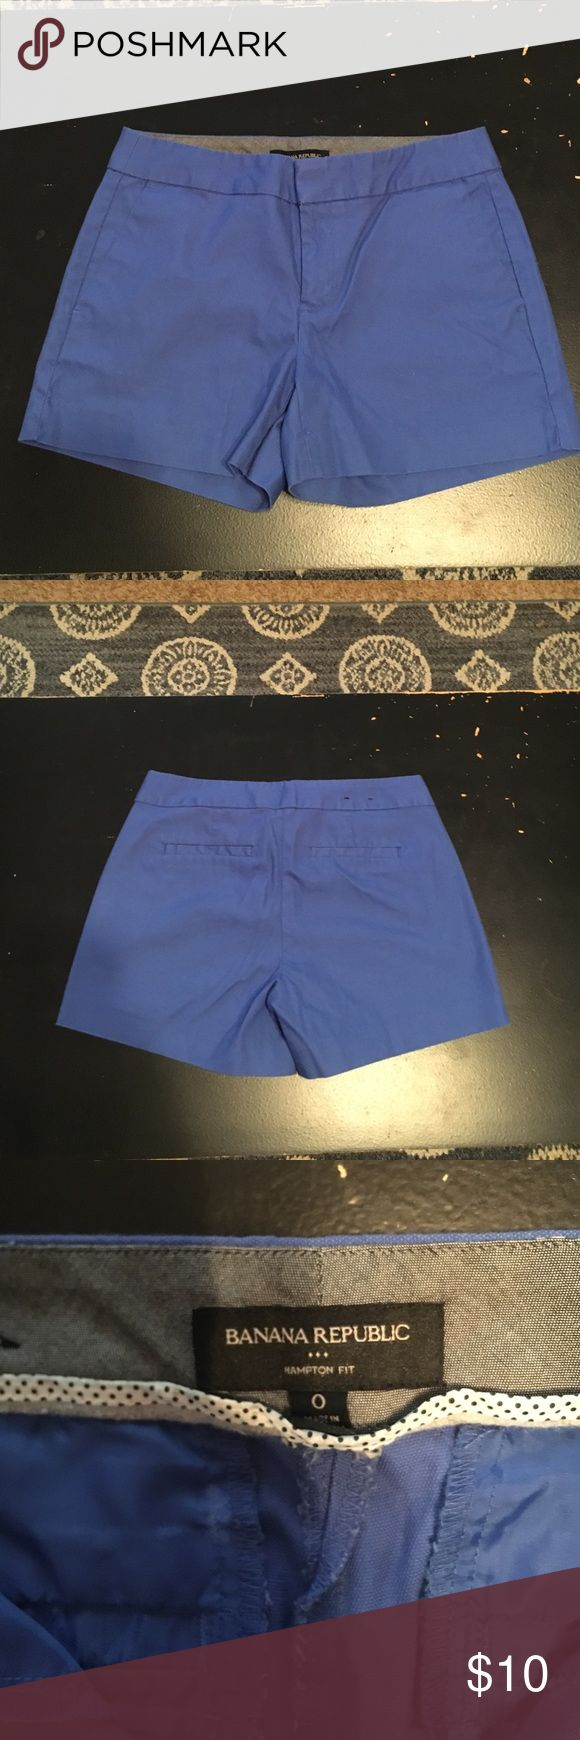 Royal Blue Hampton Fit Short Royal Blue Hampton Fit Short - Size 0 - (worn once or twice)  Sits below the belly button. True to Size. Banana Republic Shorts